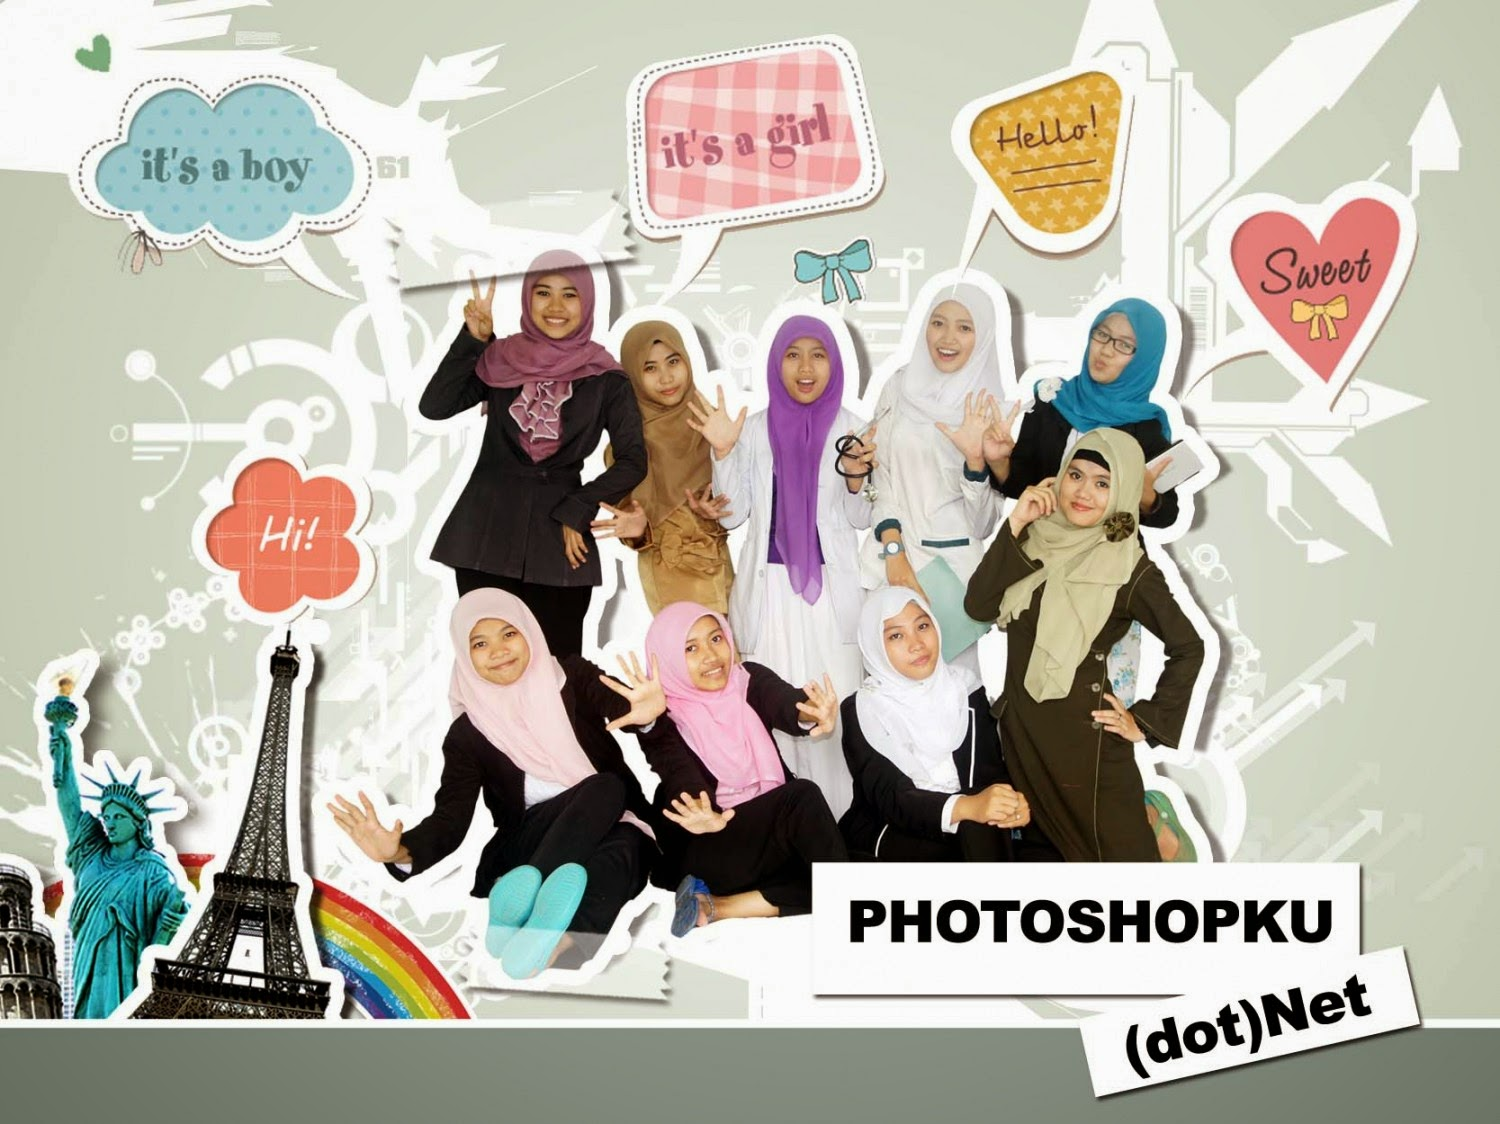 Membuat wallpaper dengan adobe photoshop